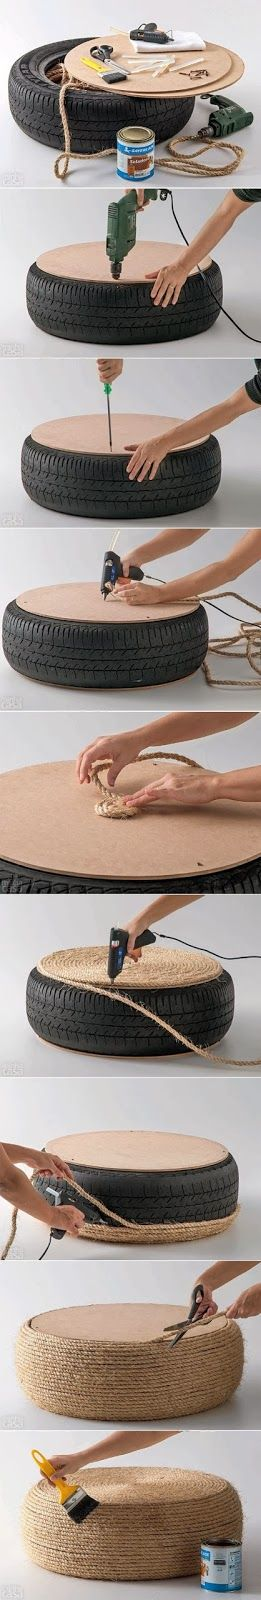 My DIY Projects: DIY Tire Ottoman